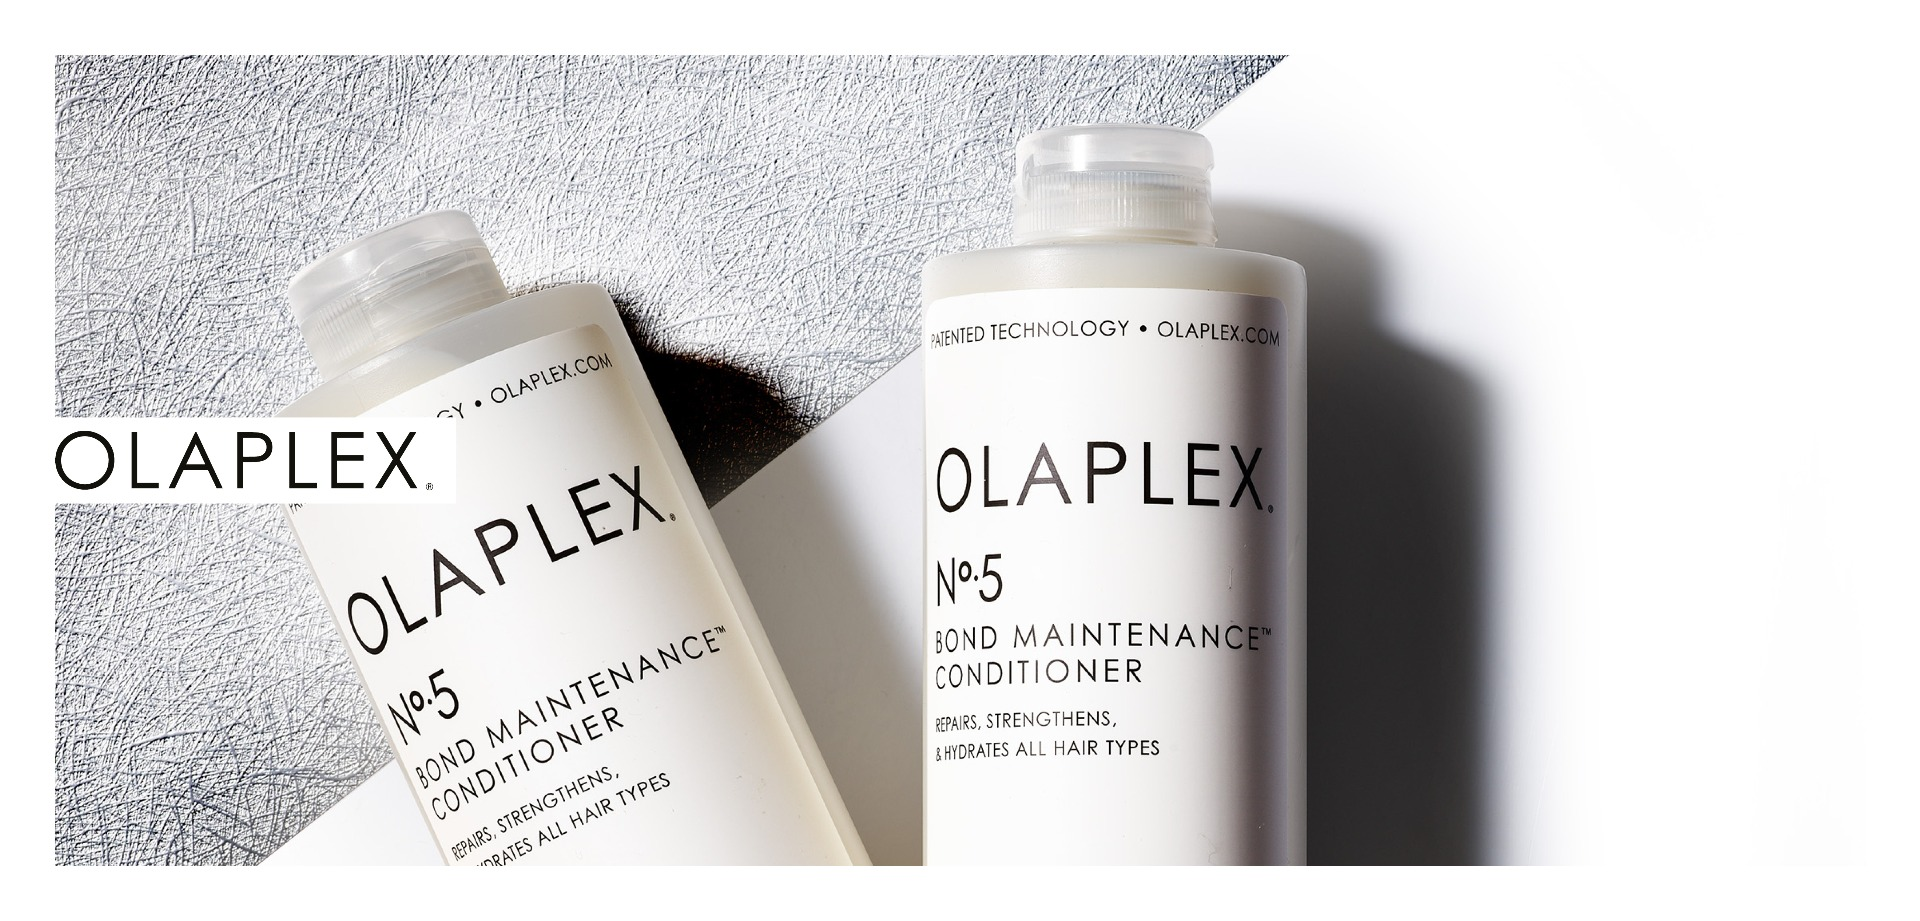 Olaplex Difference